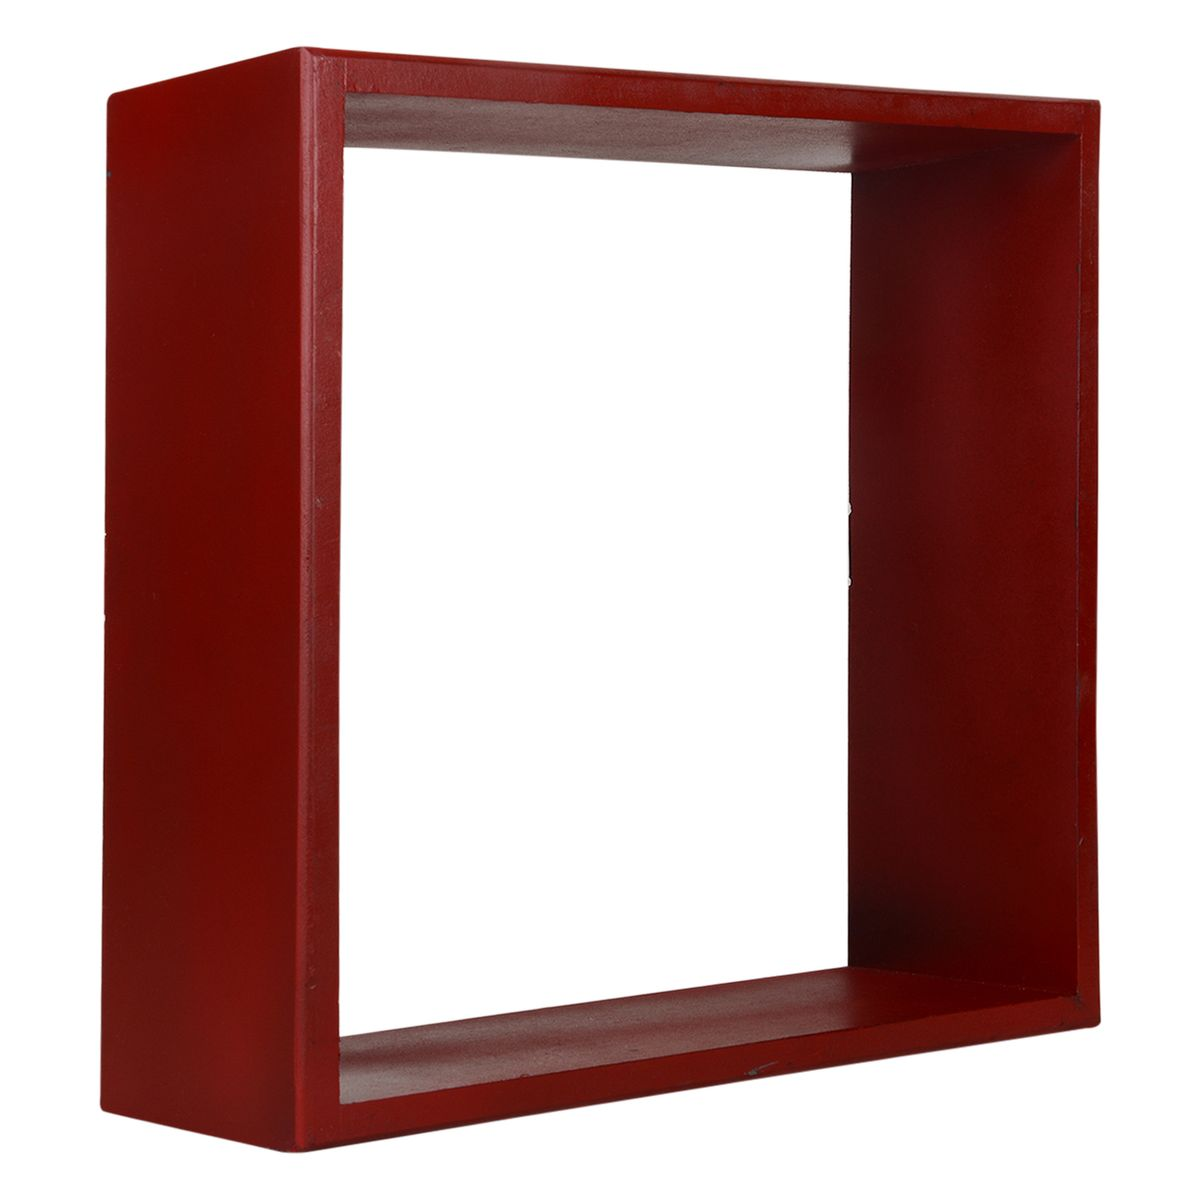 Vintageware Decorative Wall Shelf for Home  Office Set of 3 - Red